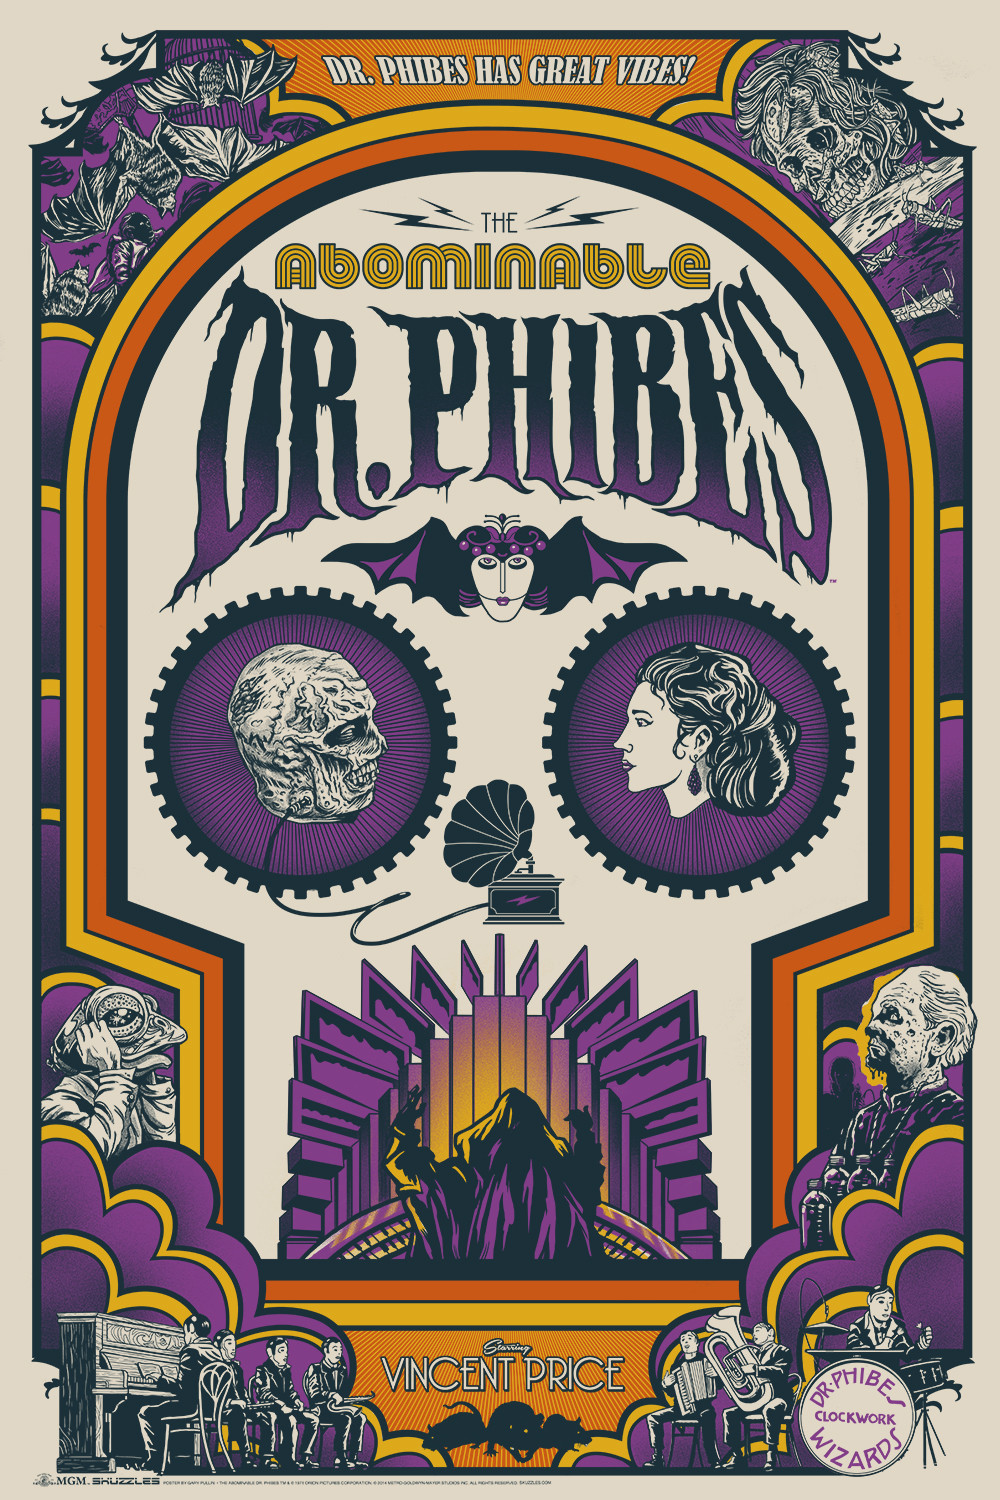 ghoulish gary pullin The Abominable Dr. Phibes - Art Deco Skull